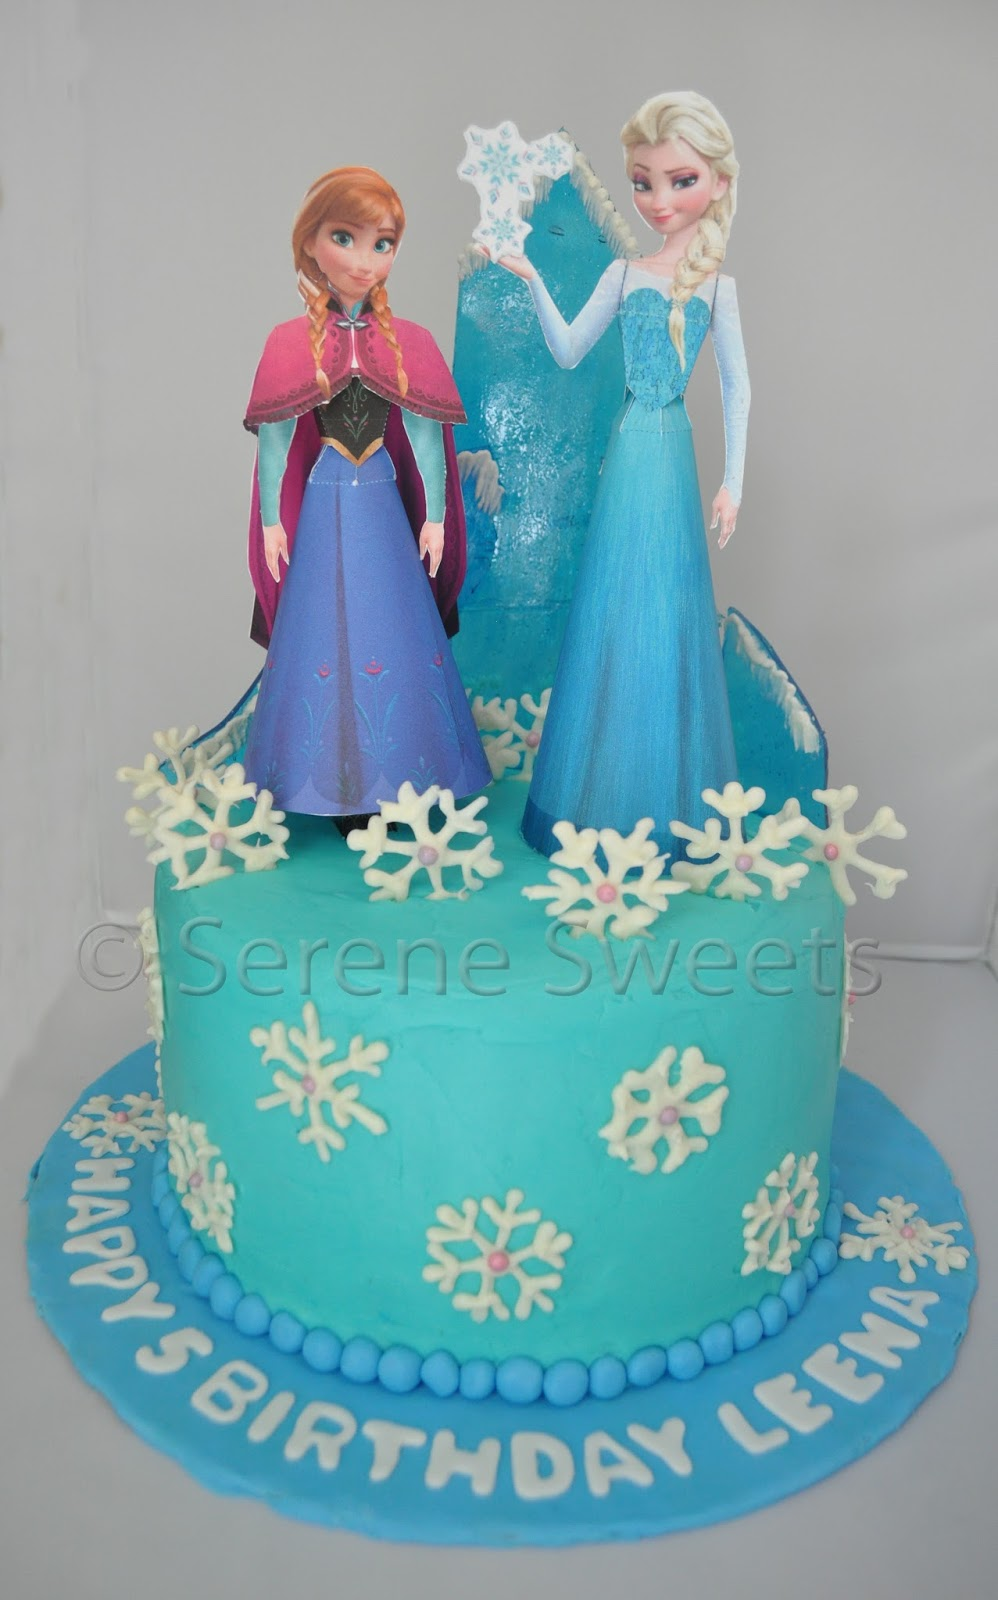 Serene Sweets Frozen Birthday Cake